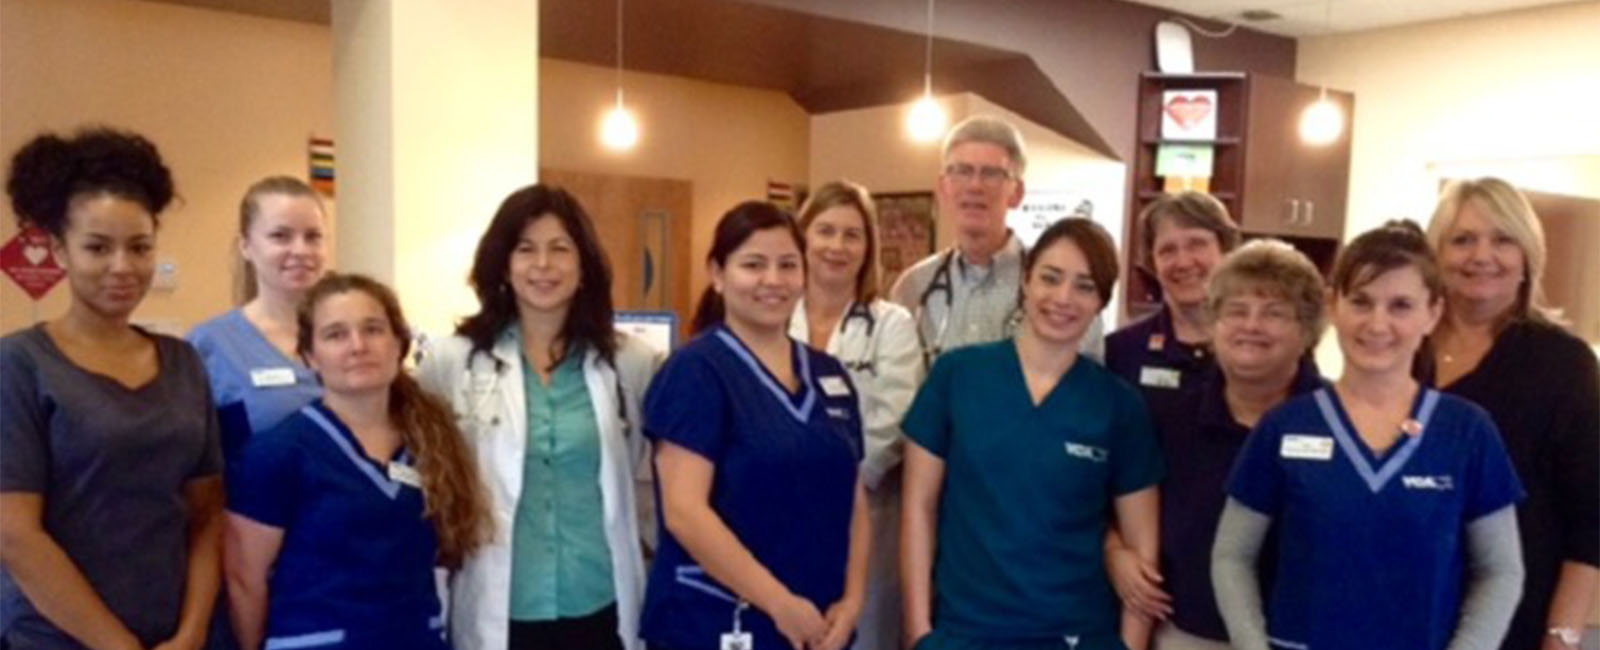 Homepage Team Picture of VCA South County Animal Hospital